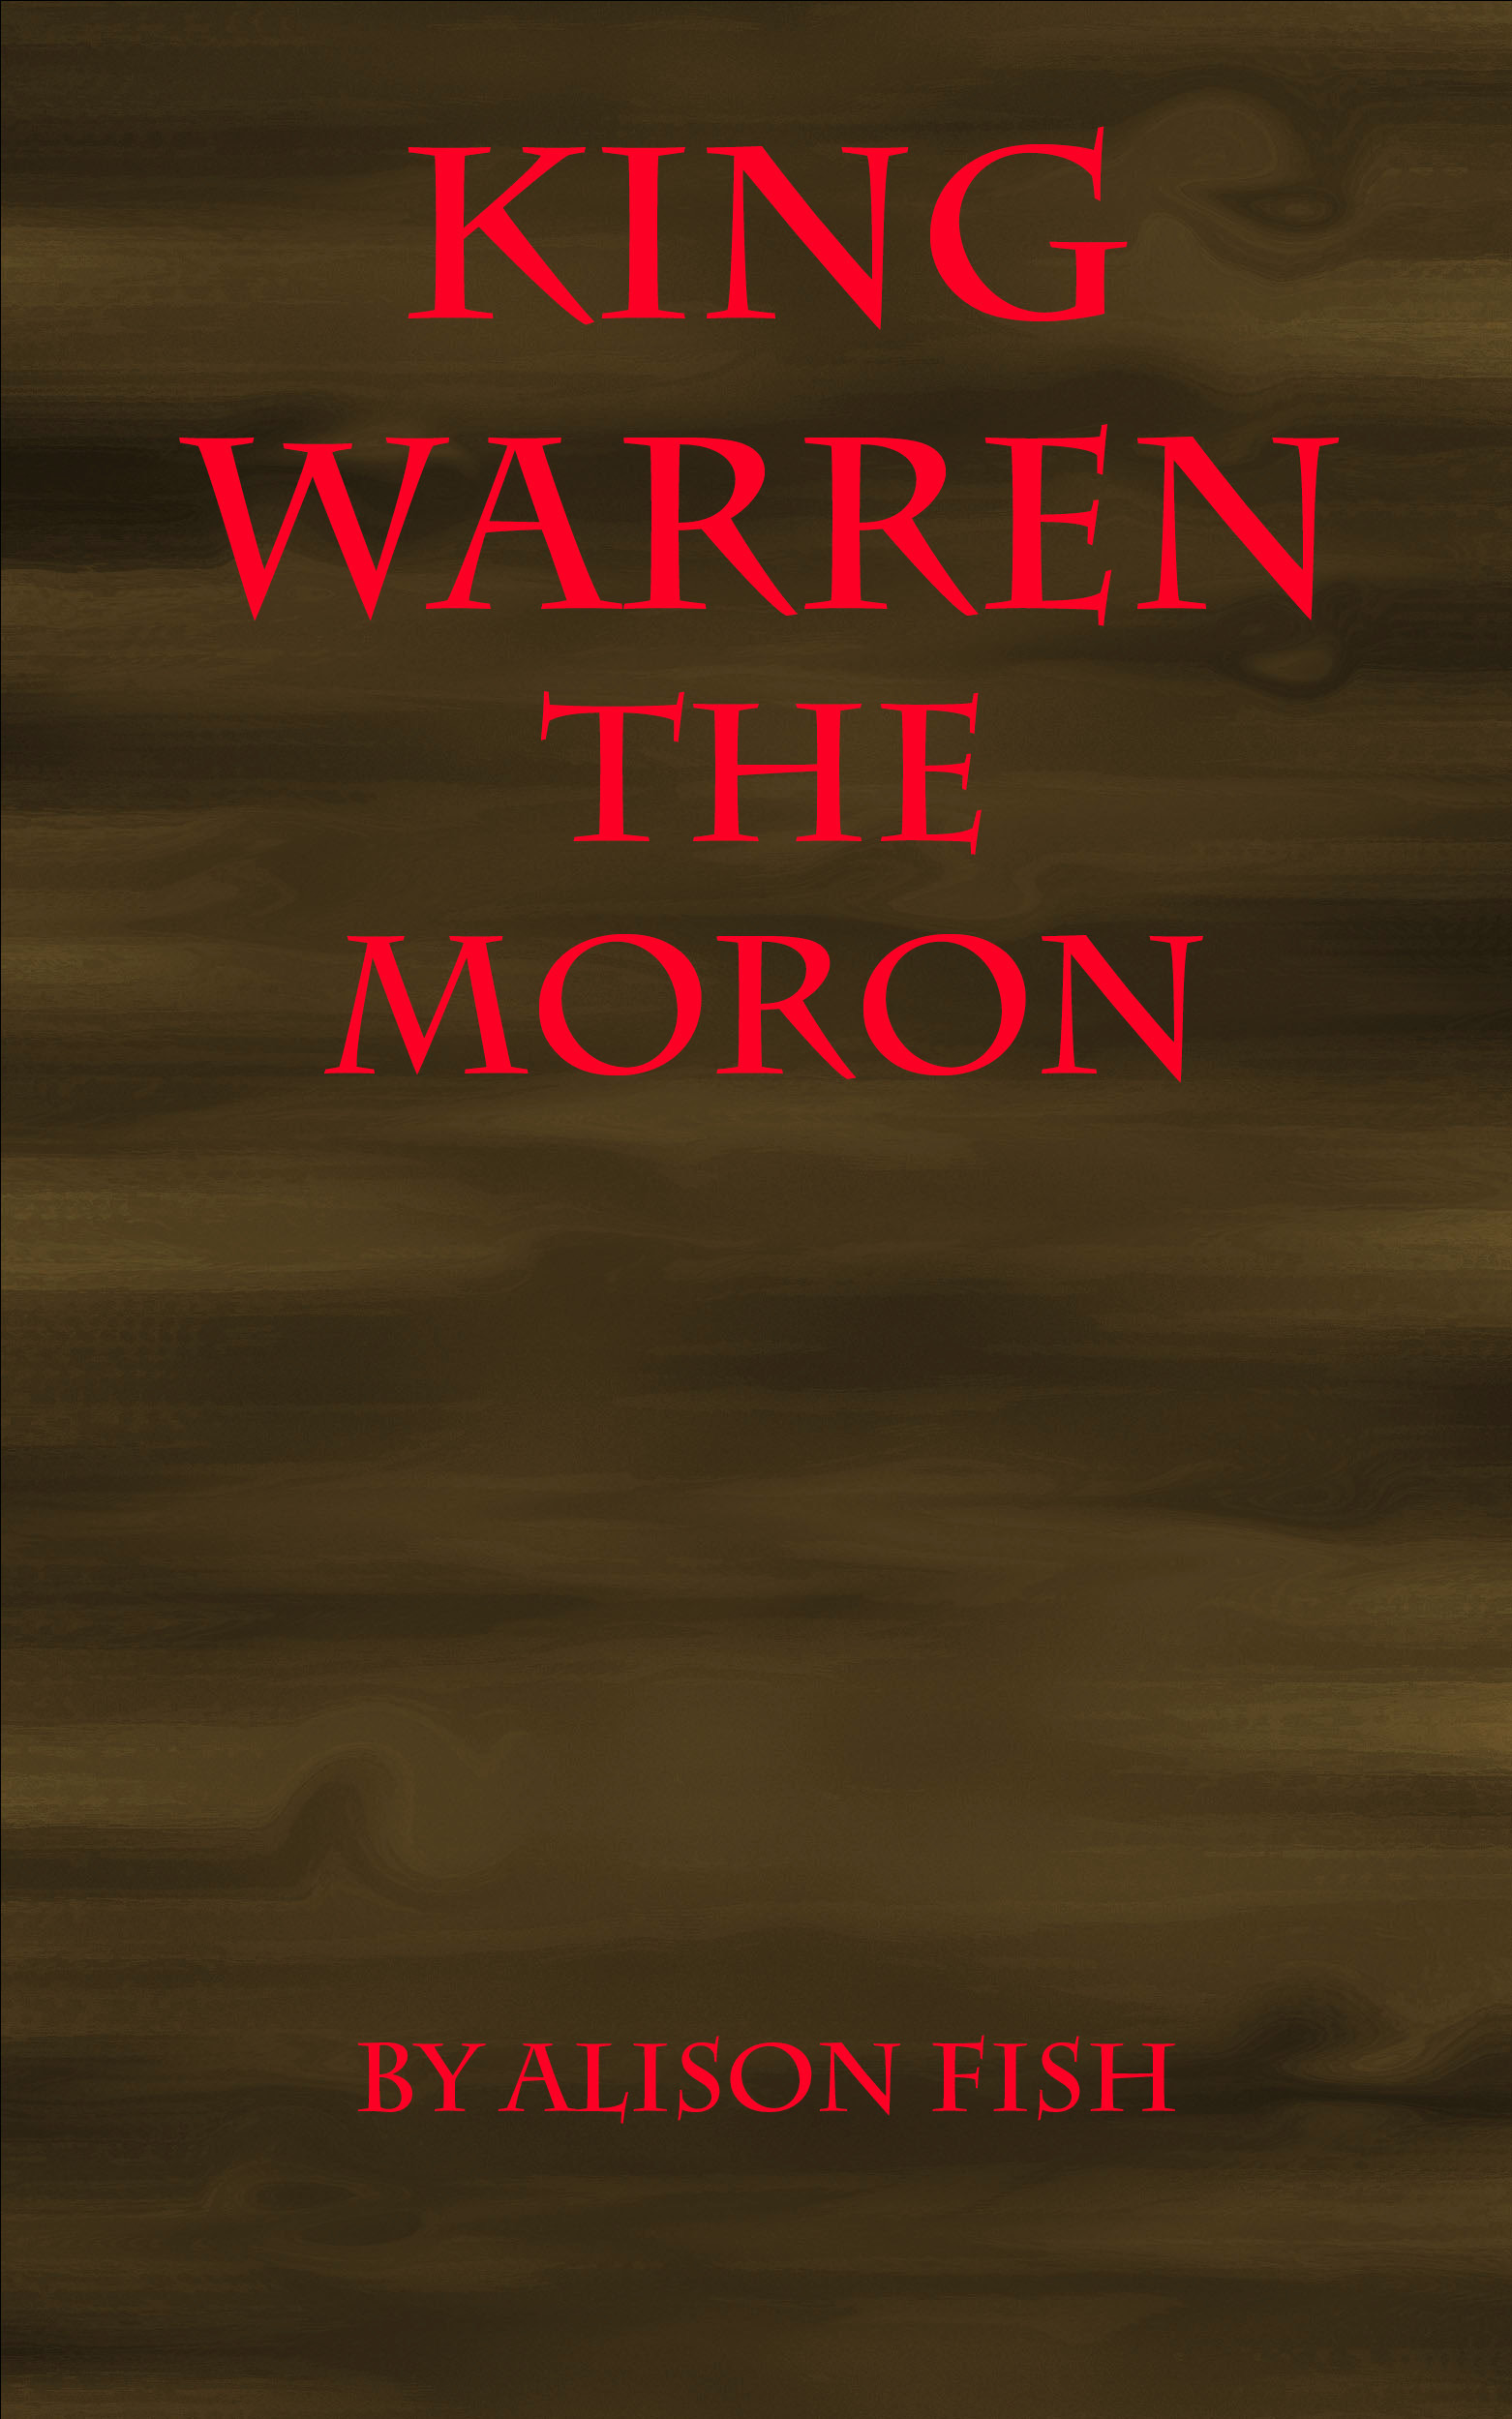 King Warren the Moron